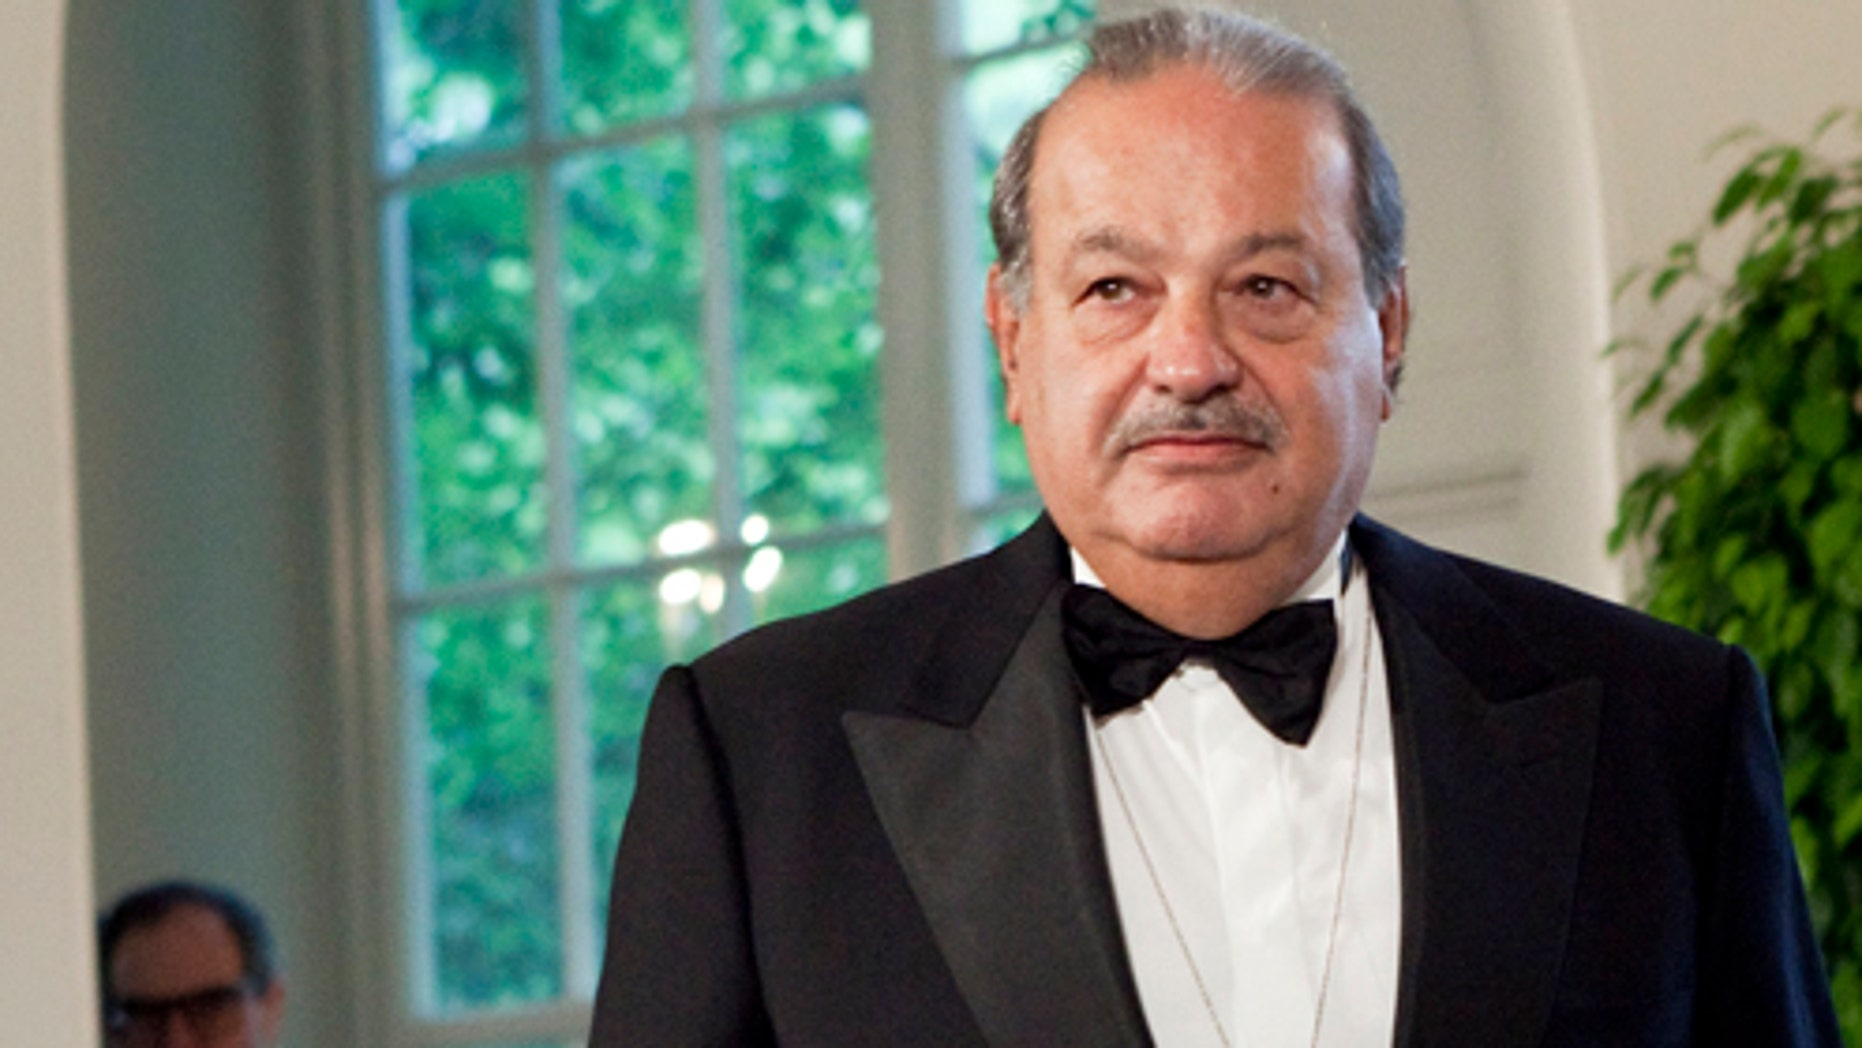 Carlos Slim at the White House for a state dinner May 19, 2010 in  Washington, DC.